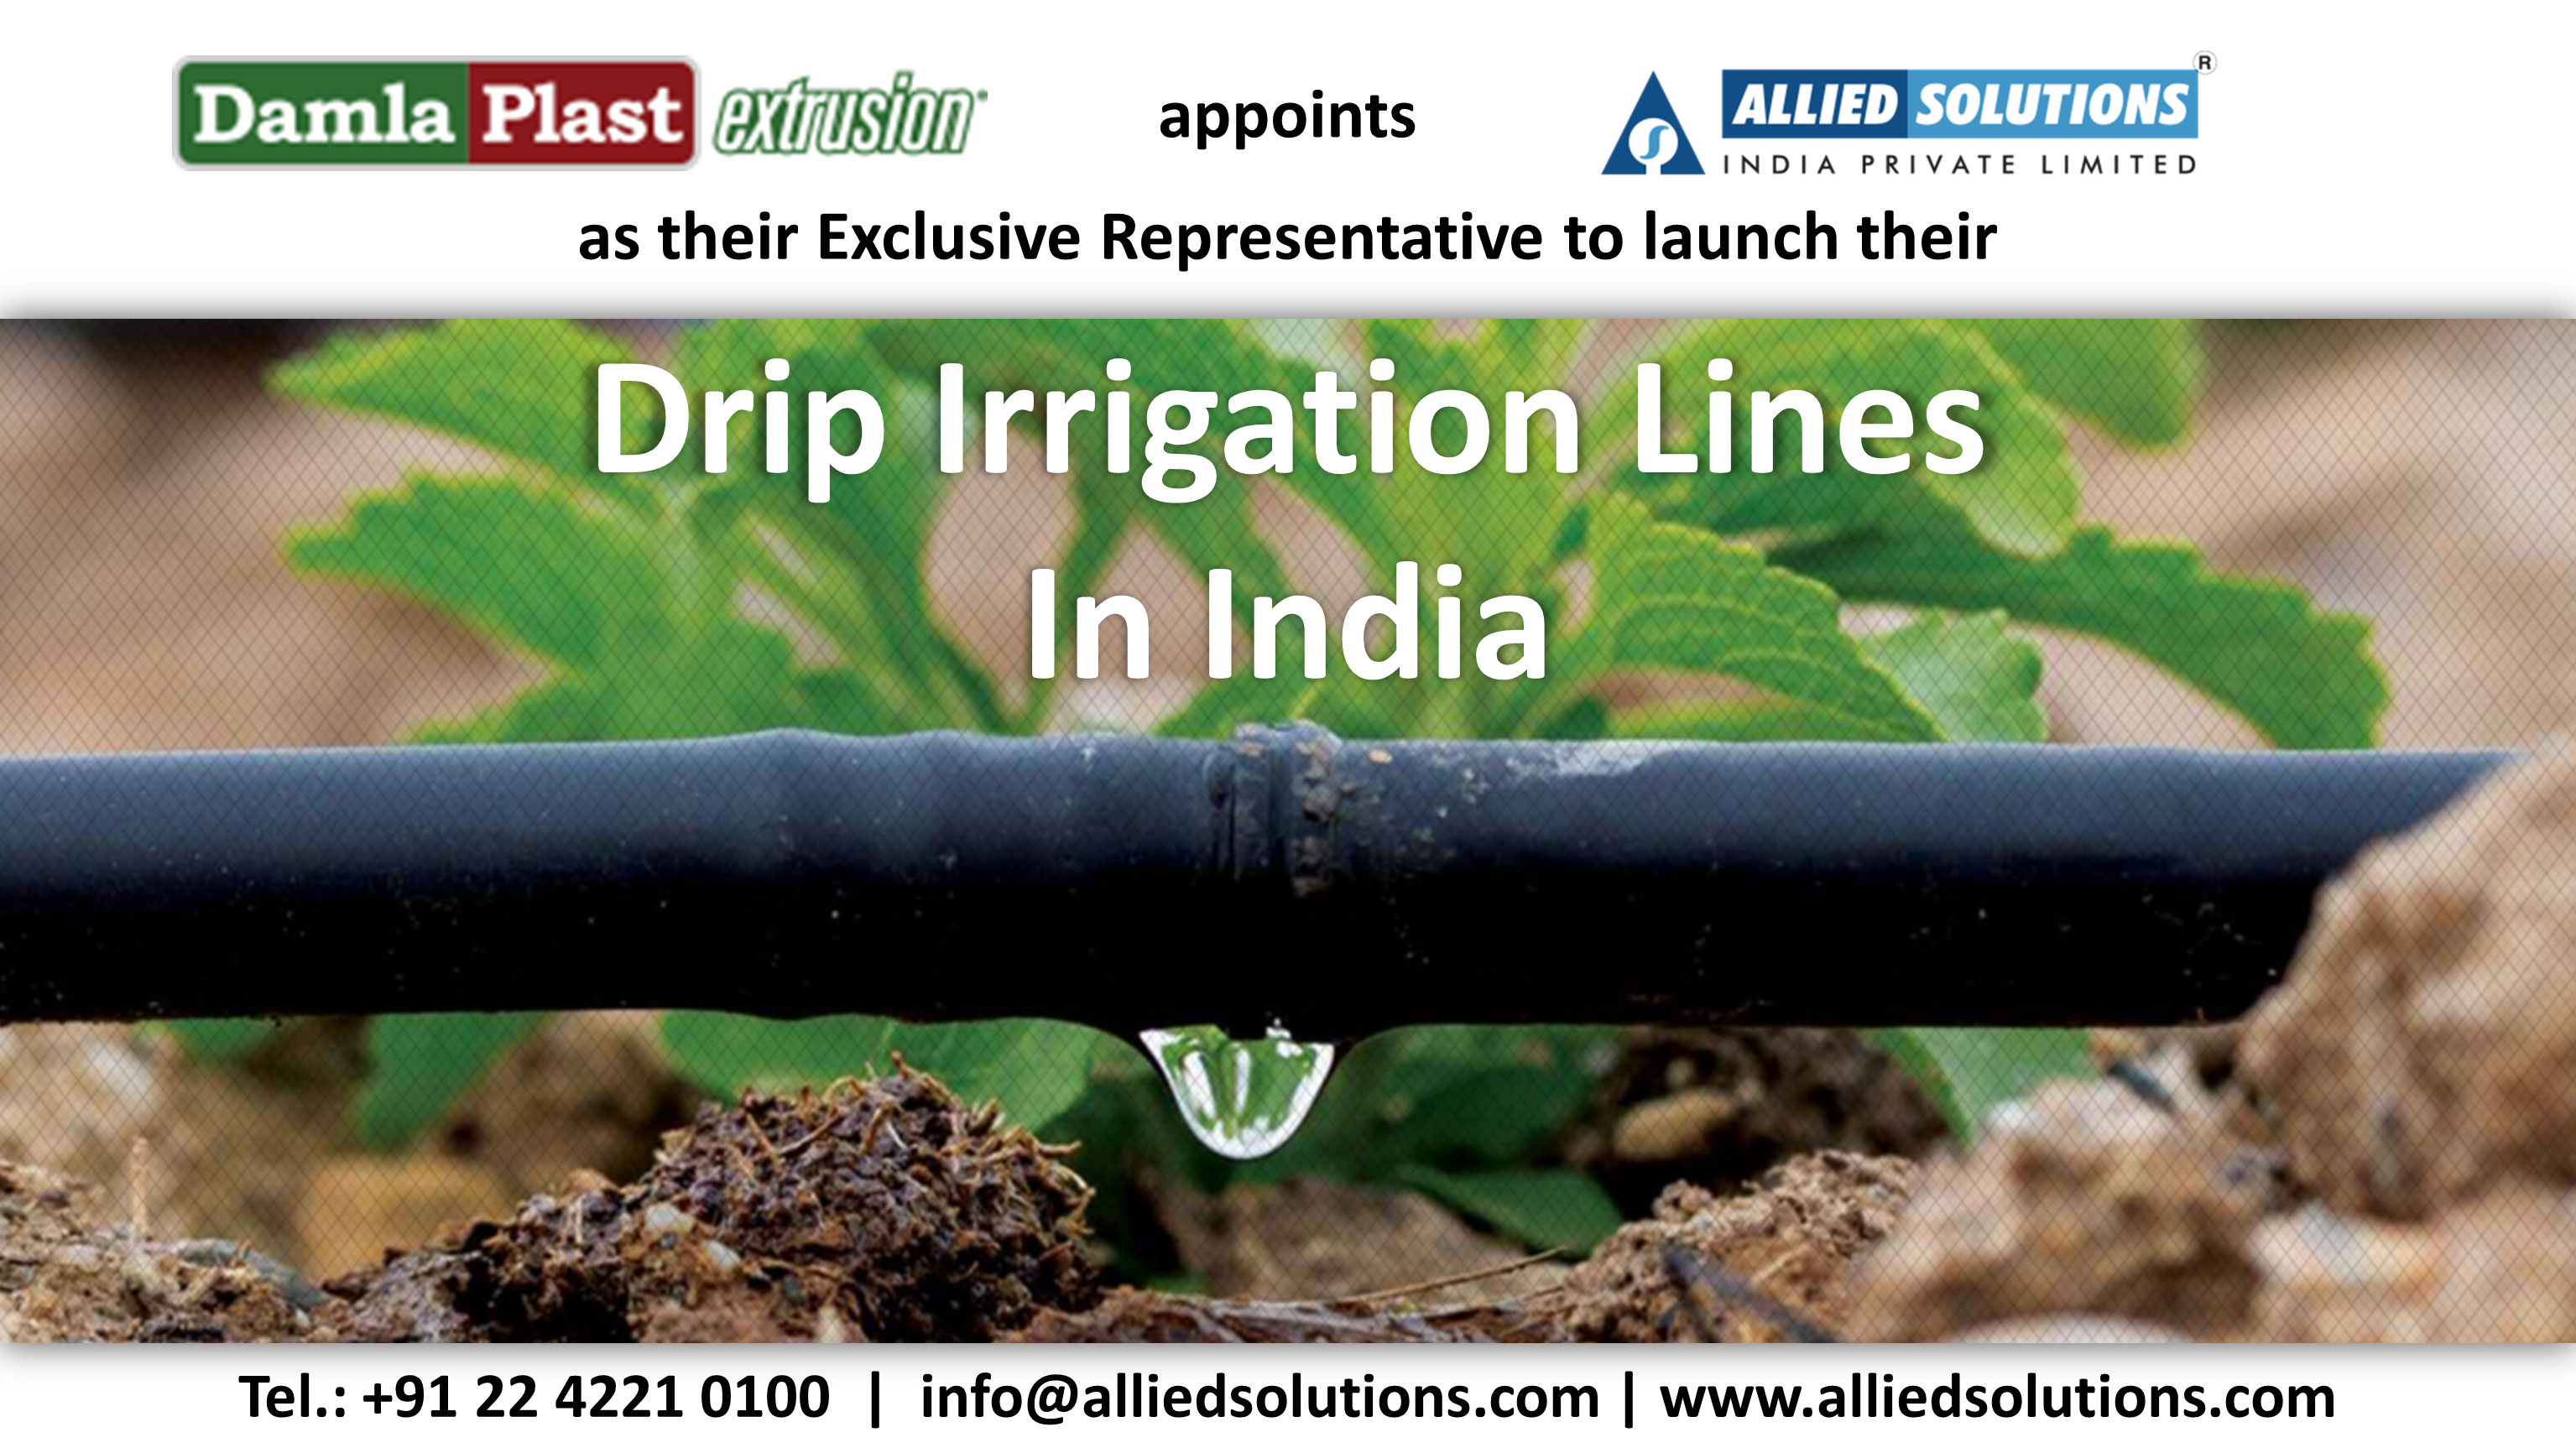 Damla Plast appoints Allied Solutions India Pvt. Ltd. as their exclusive representative to launch their Drip Irrigation Lines in India.